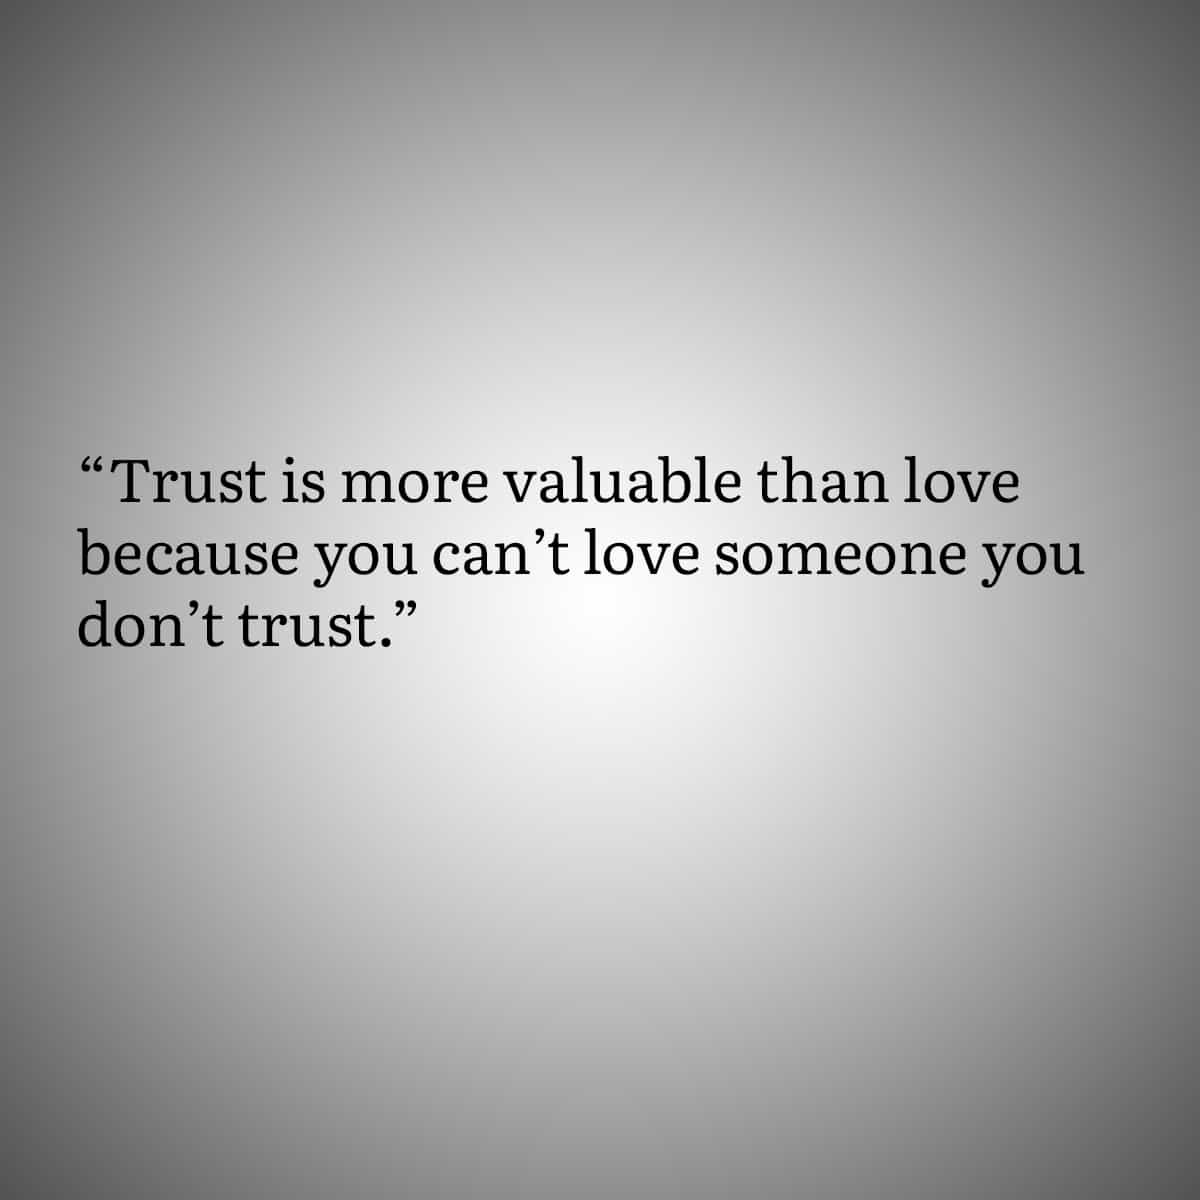 Quotes for people with Trust Issues 2: Trust is more valuable than love because you can't love someone don't trust.